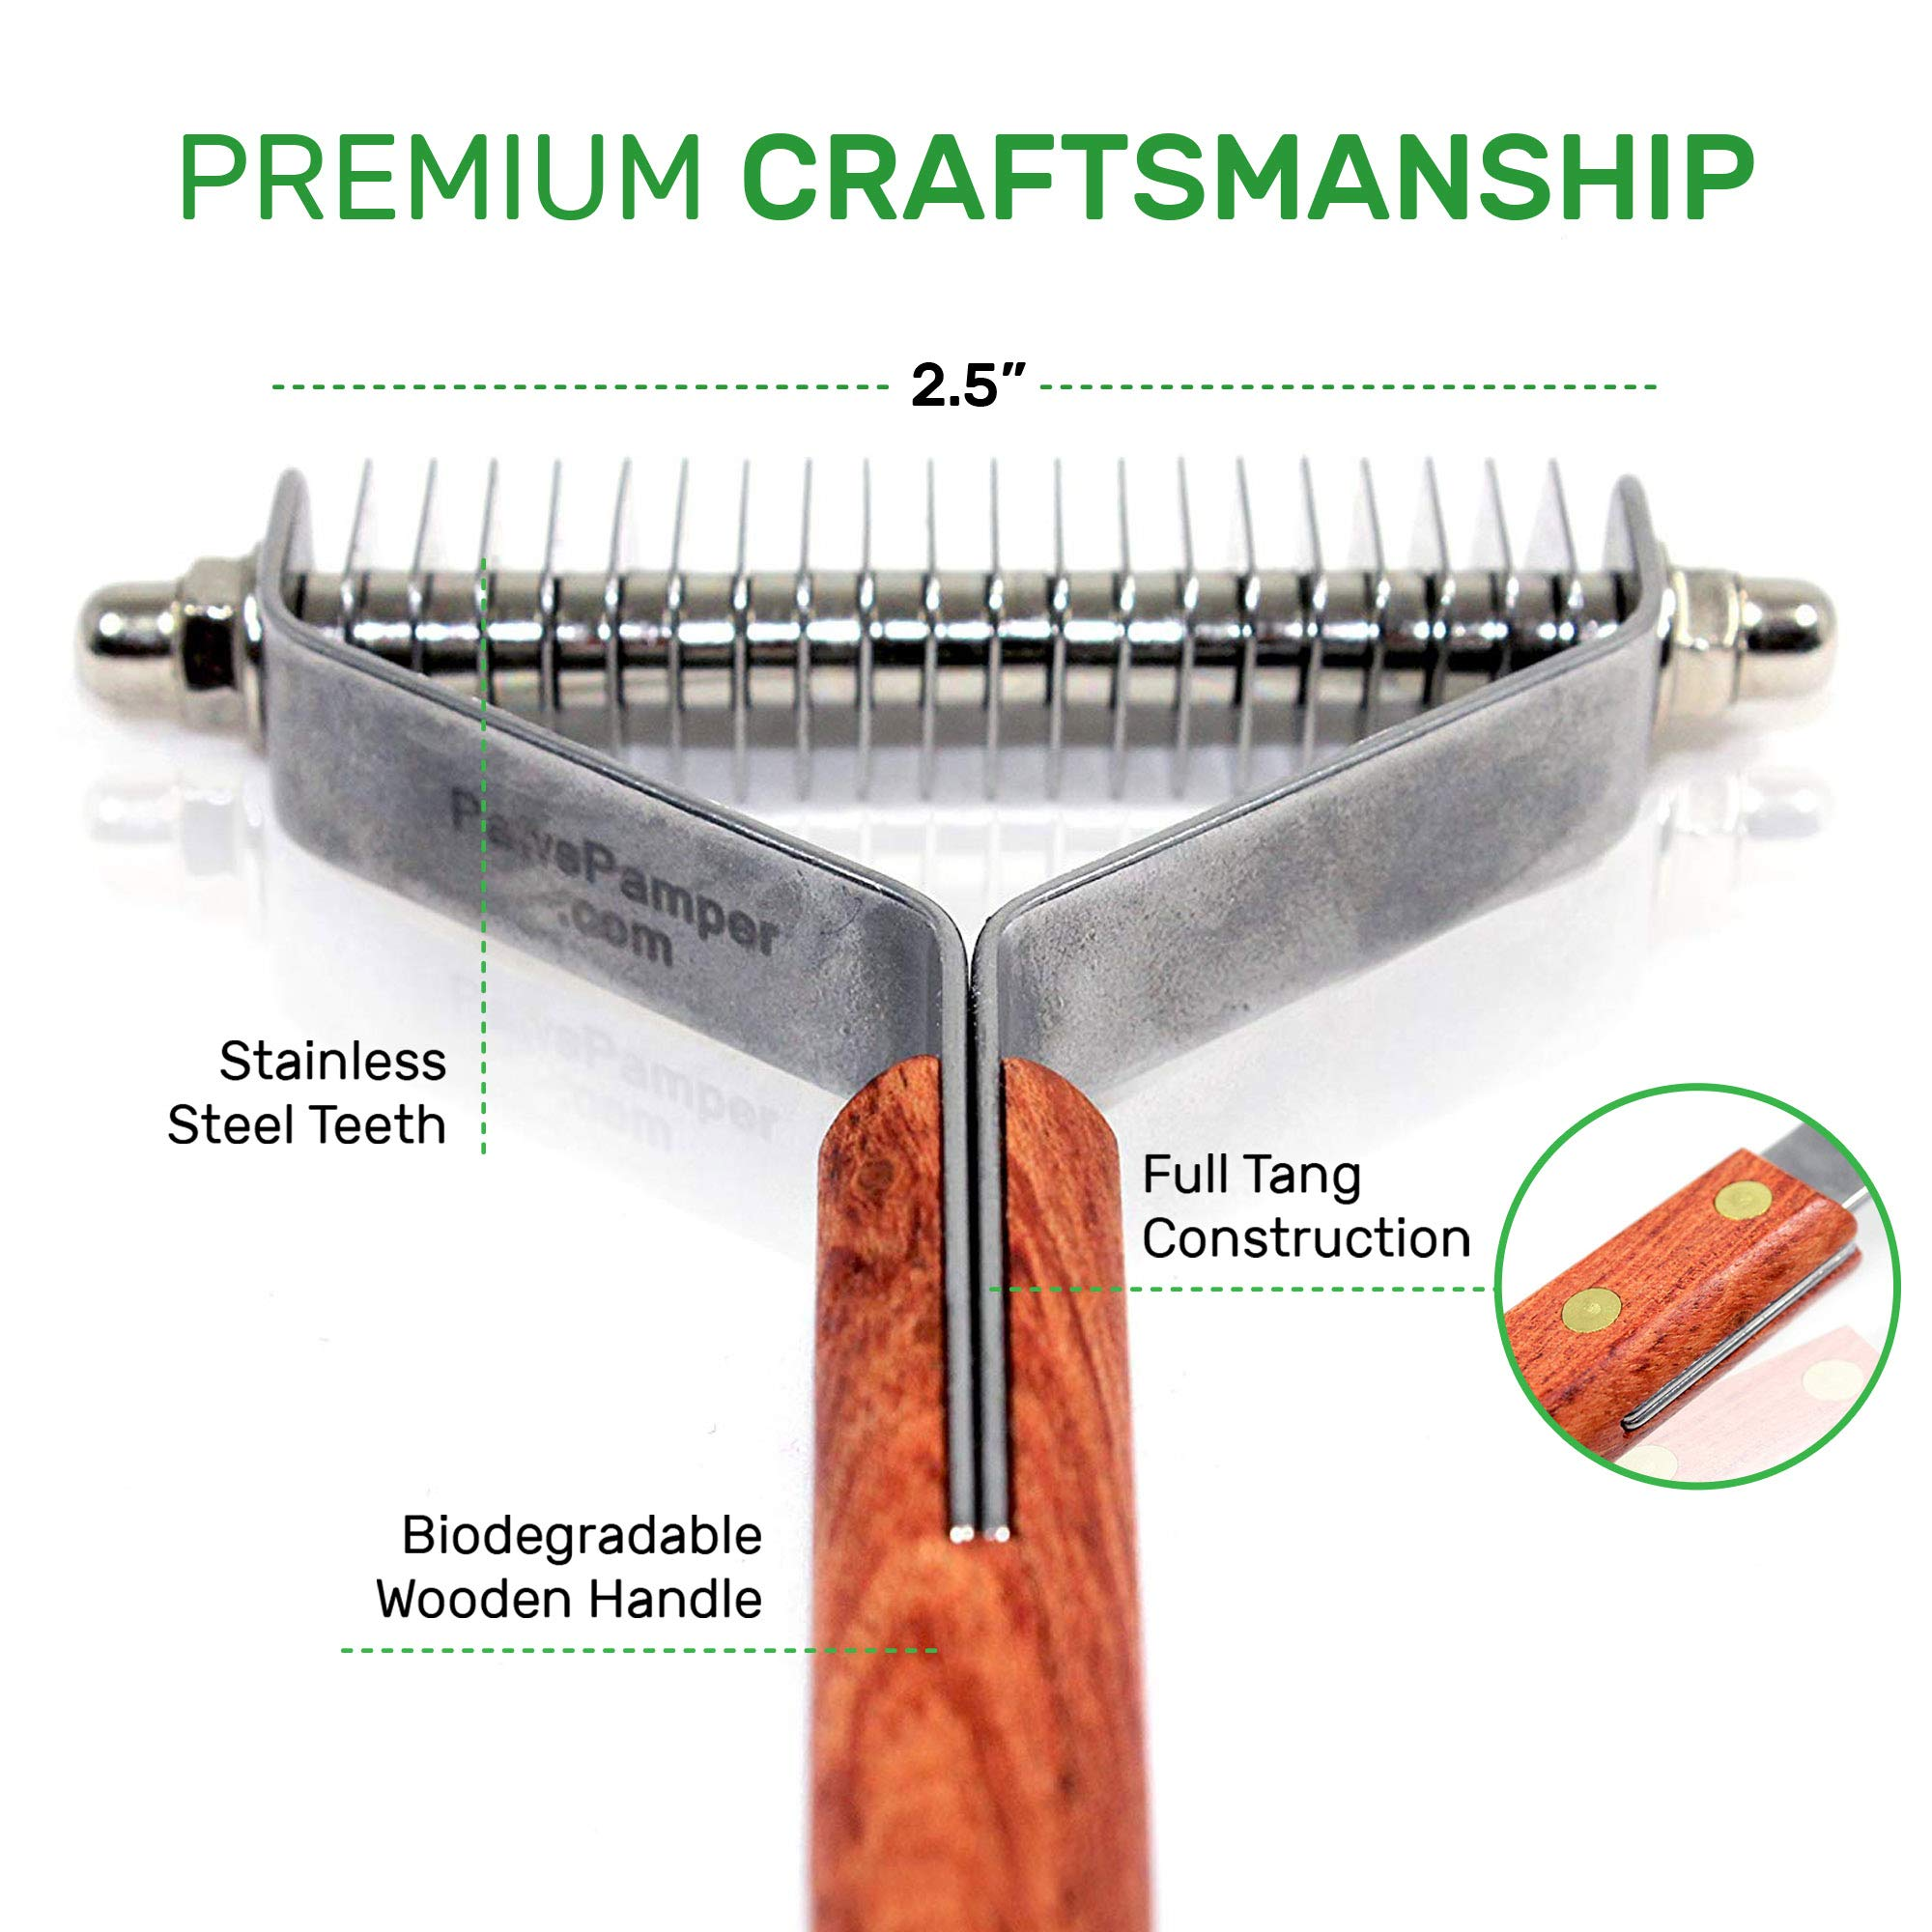 PawsPamper Dual-Use Undercoat Rake - Dematting & Finishing Grooming Tool for Dogs and Cats (13+27 Blades) by PawsPamper (Image #4)